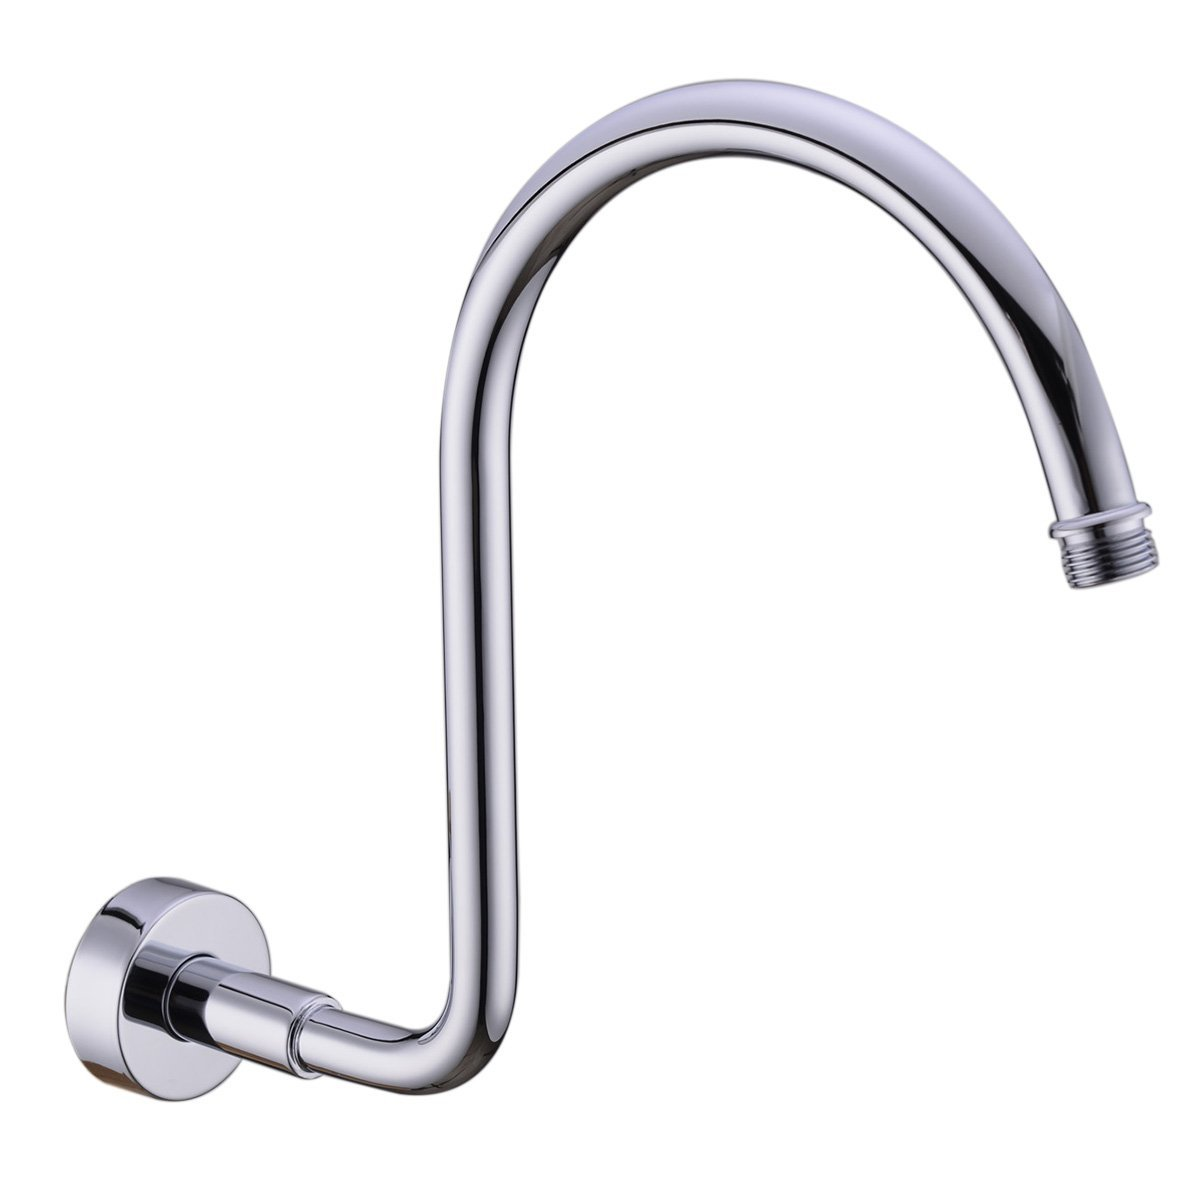 HANEBATH Brass GOOSENECK Extension Shower Arm with Flange, Chrome ...